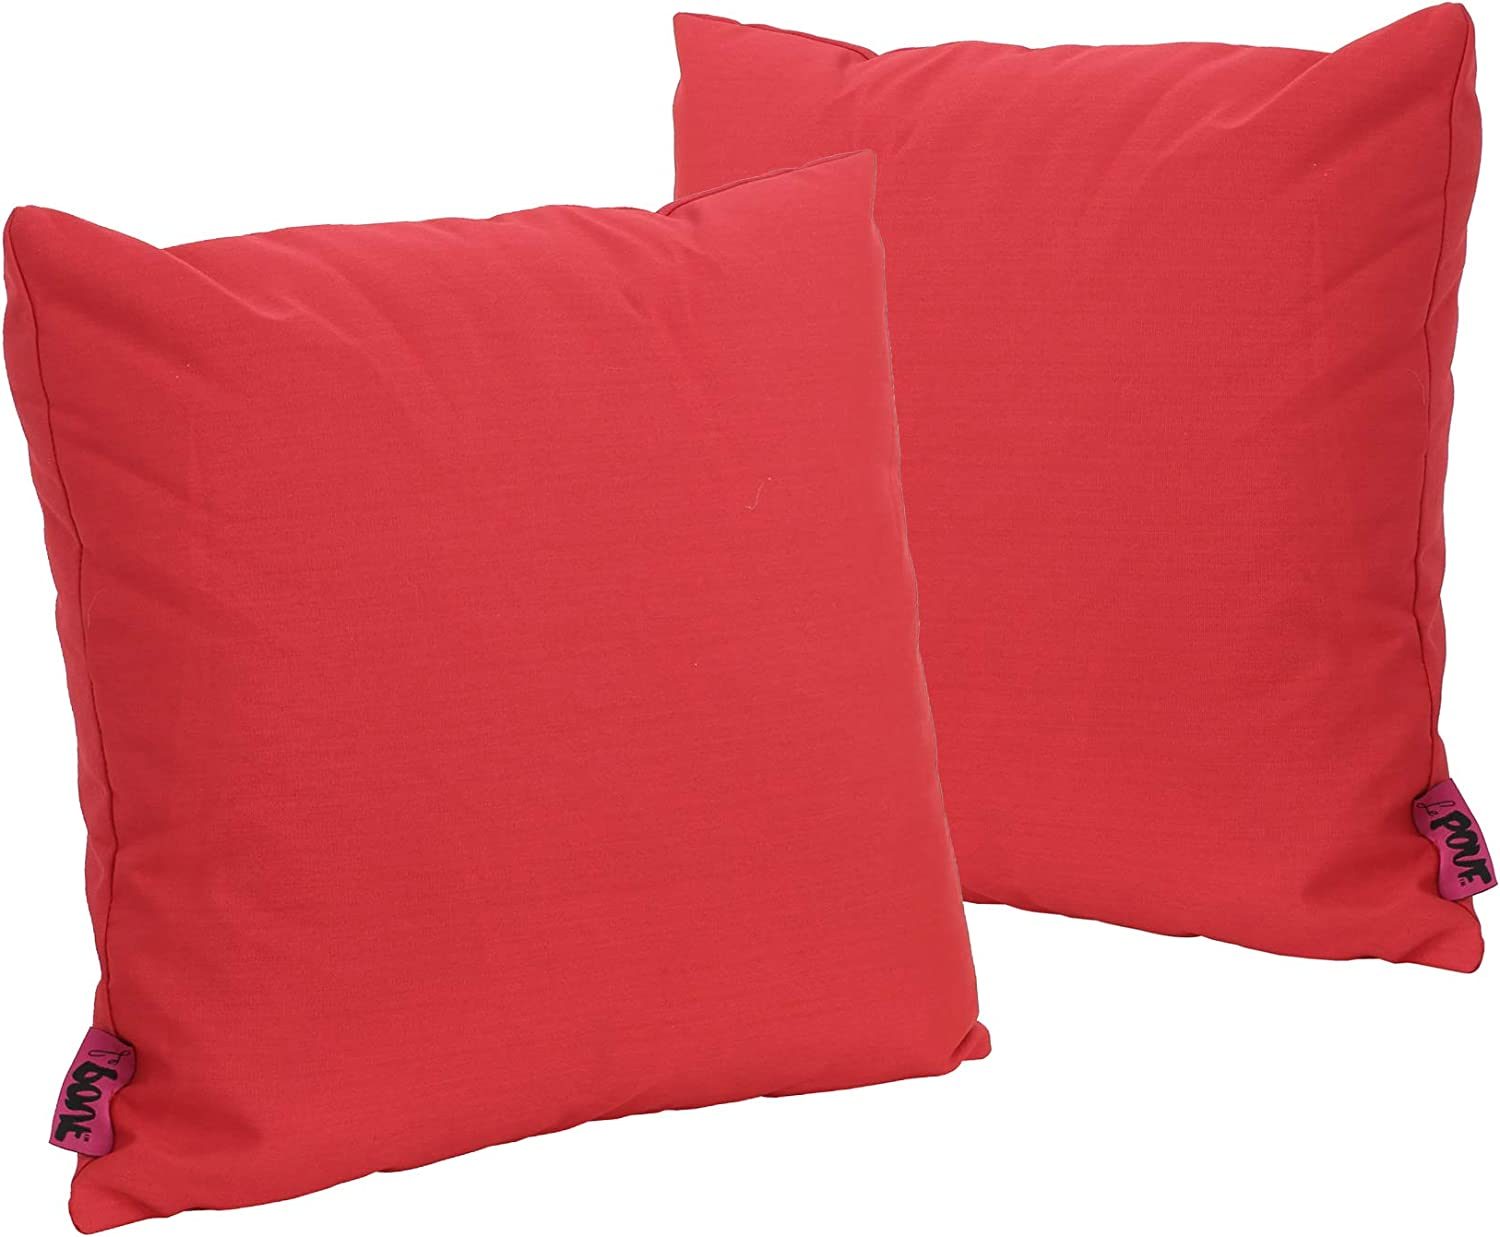 Christopher Knight Home Coronado Outdoor Red Water Resistant Square Throw Pillow Set of 2